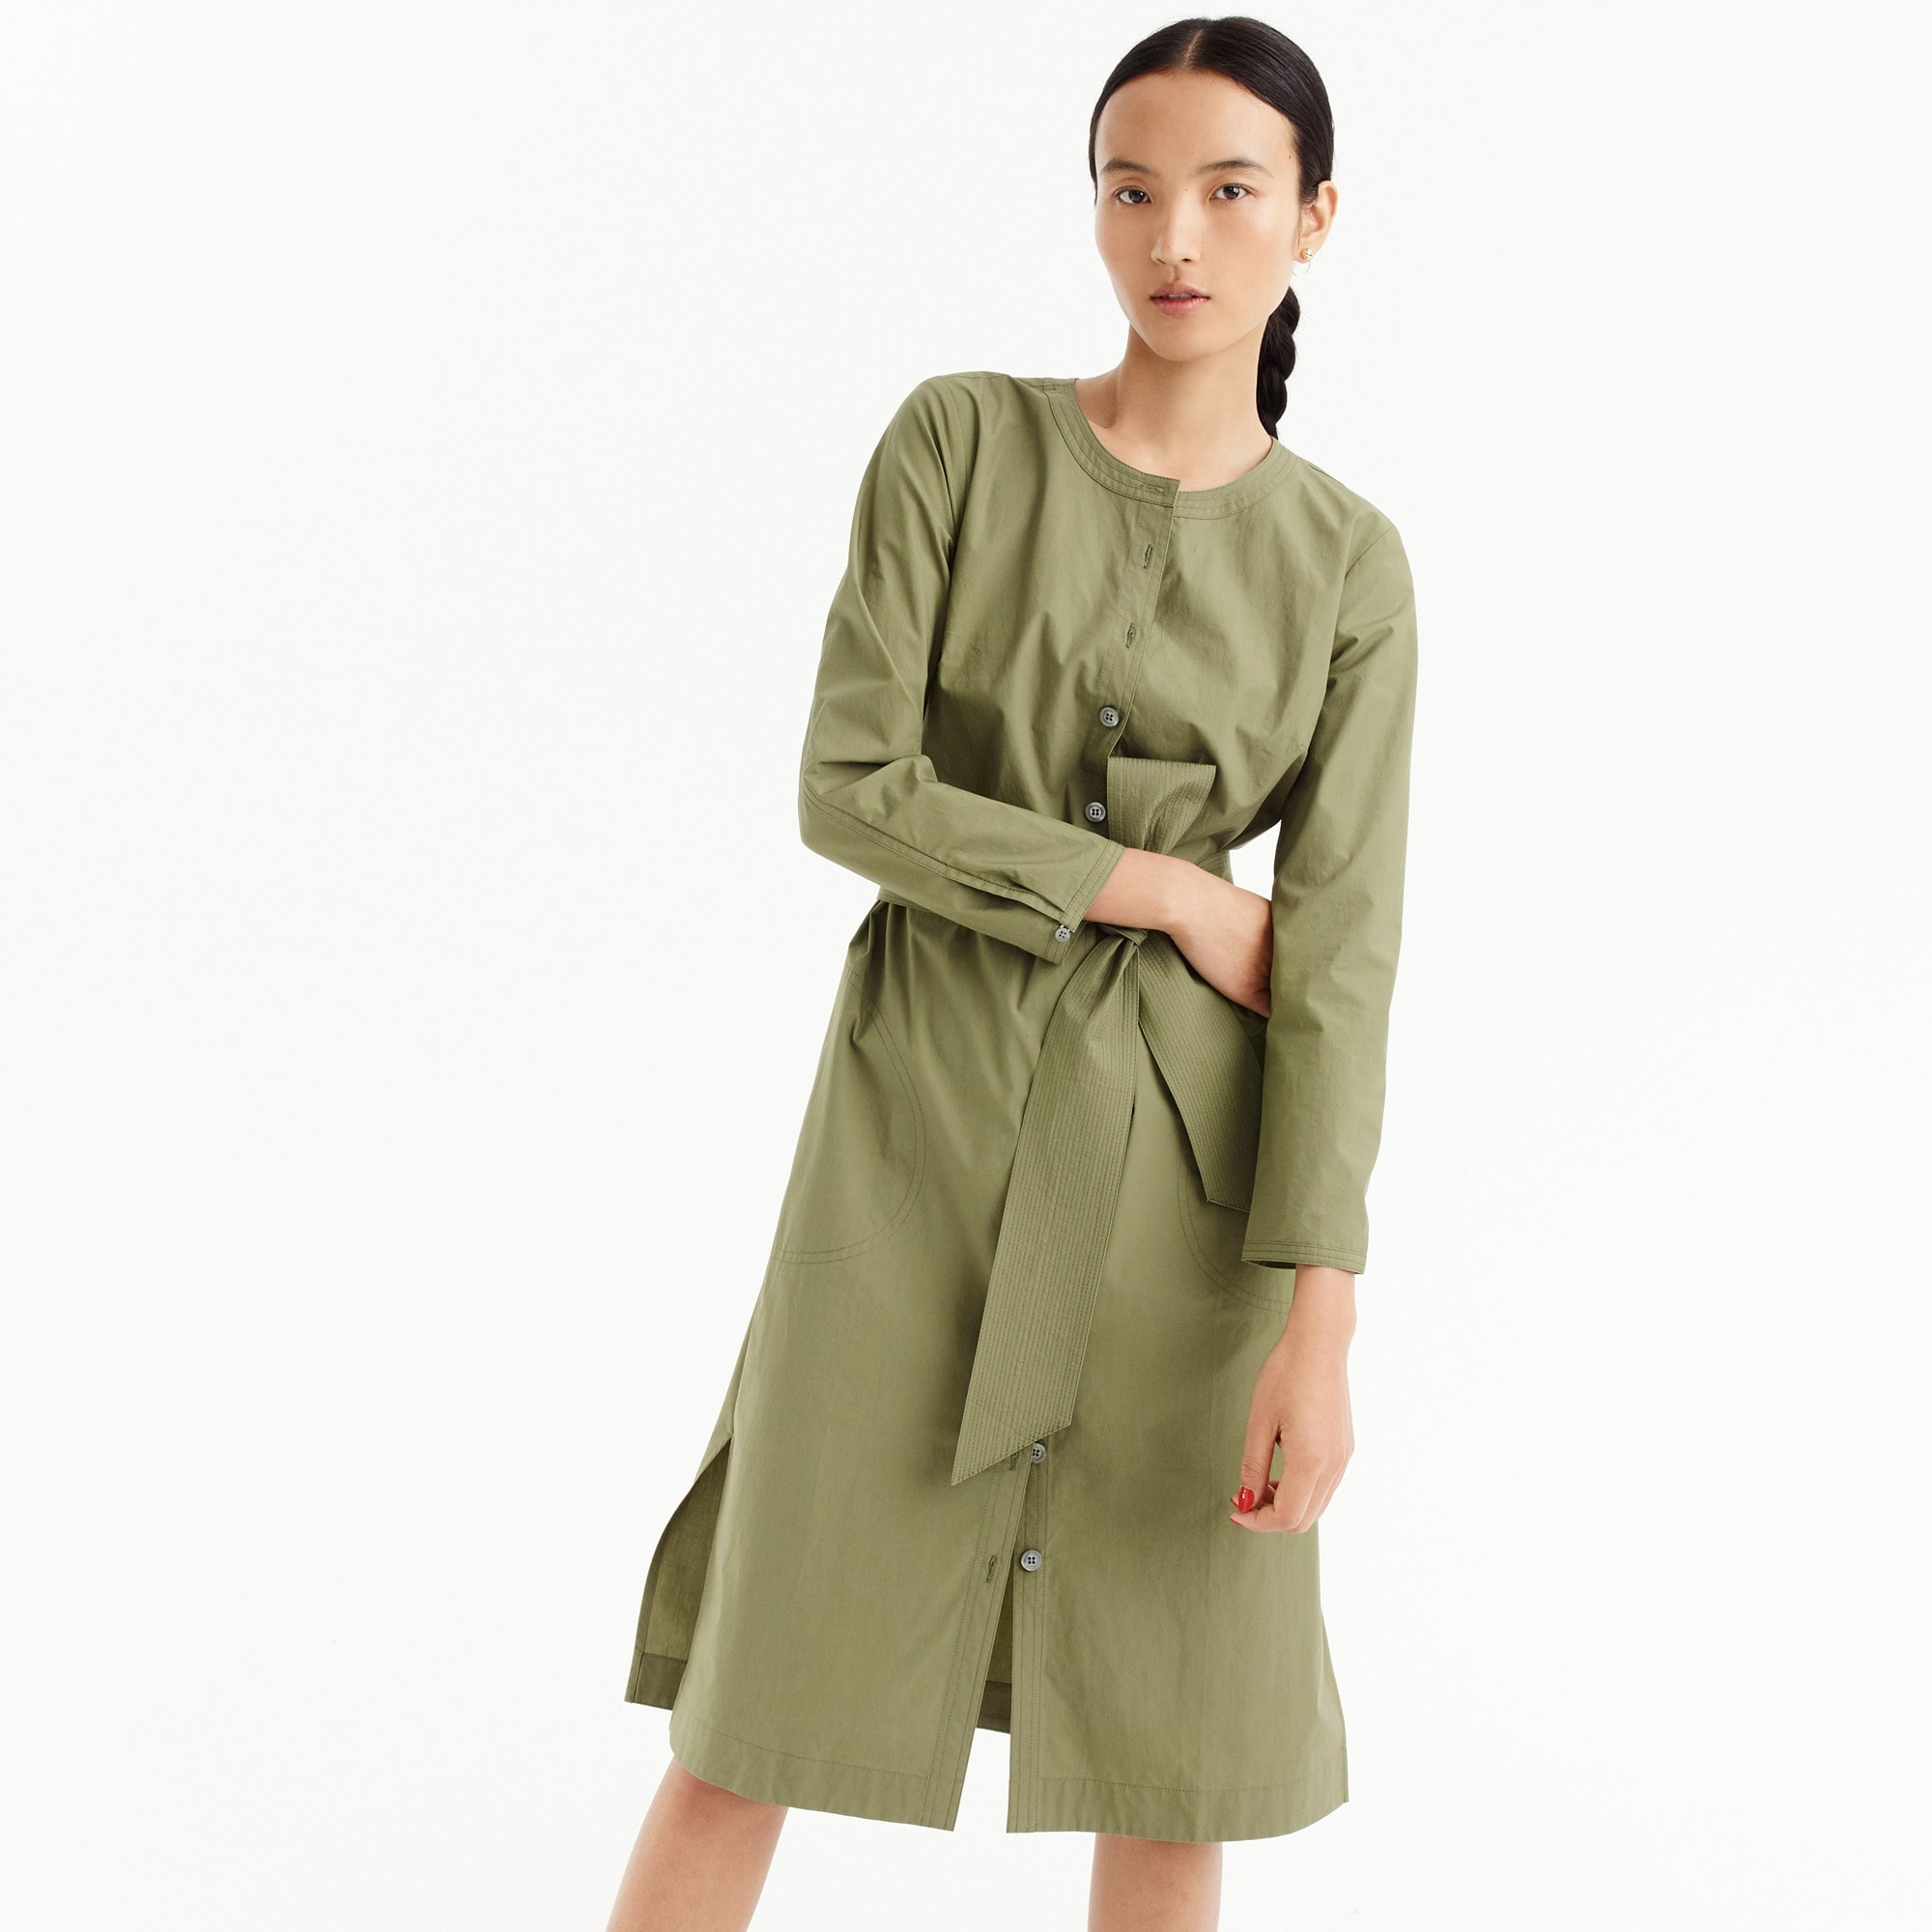 Long-sleeve shirtdress women dresses c